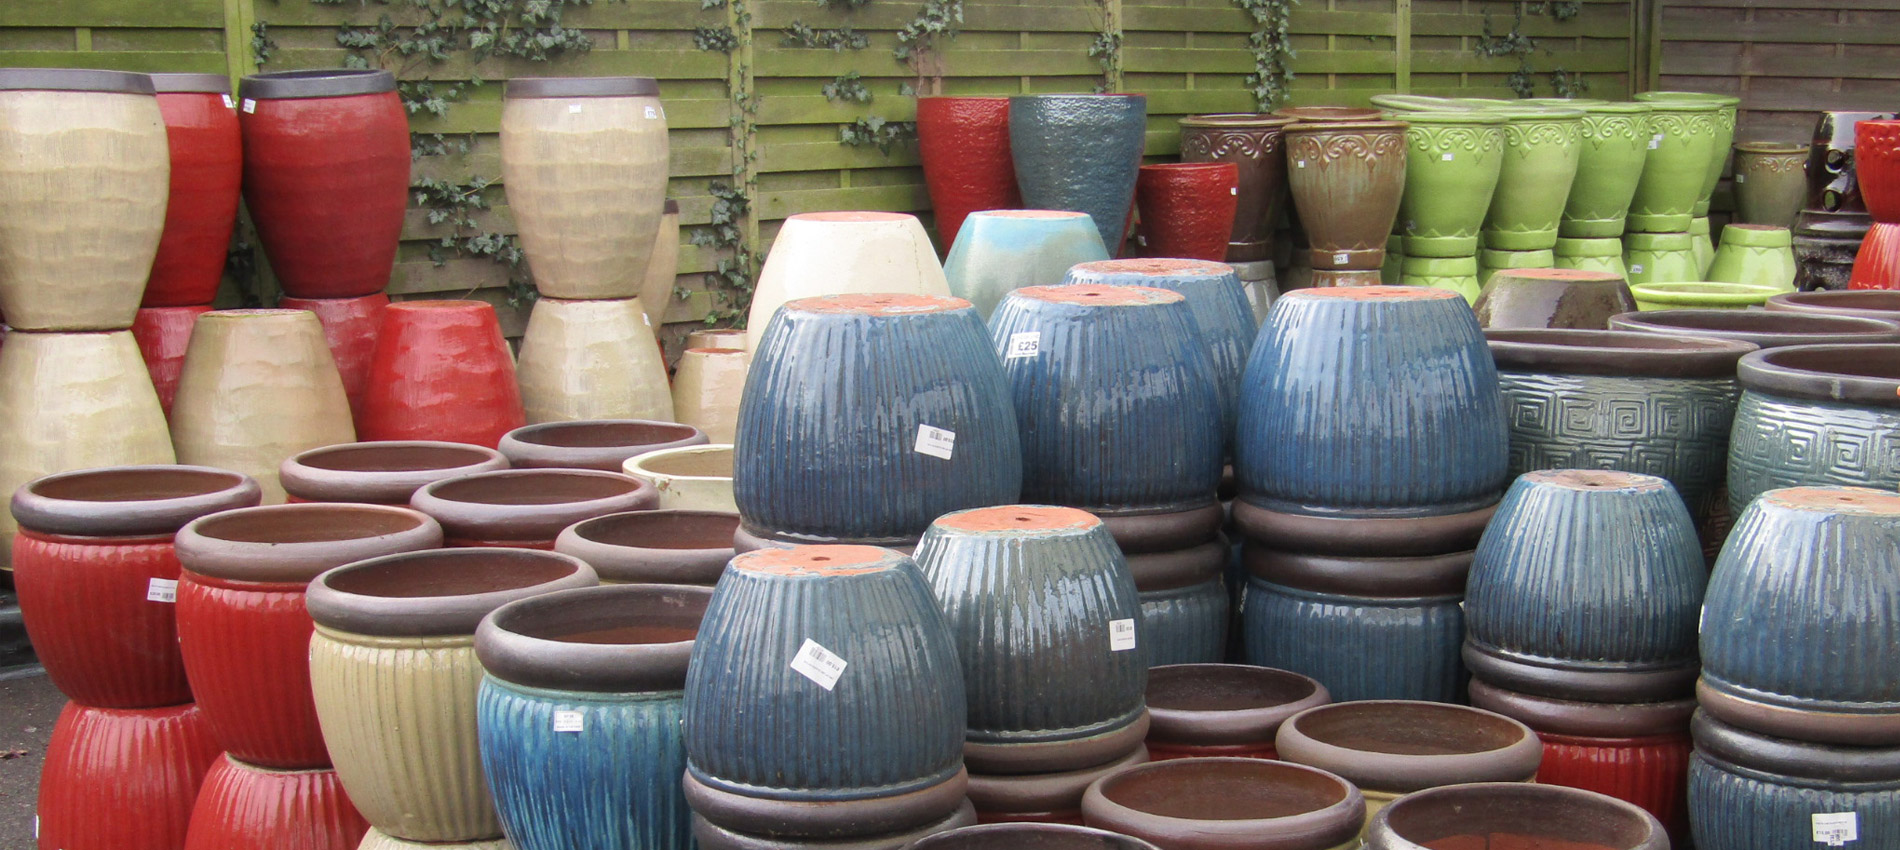 glazed pots feb 2019